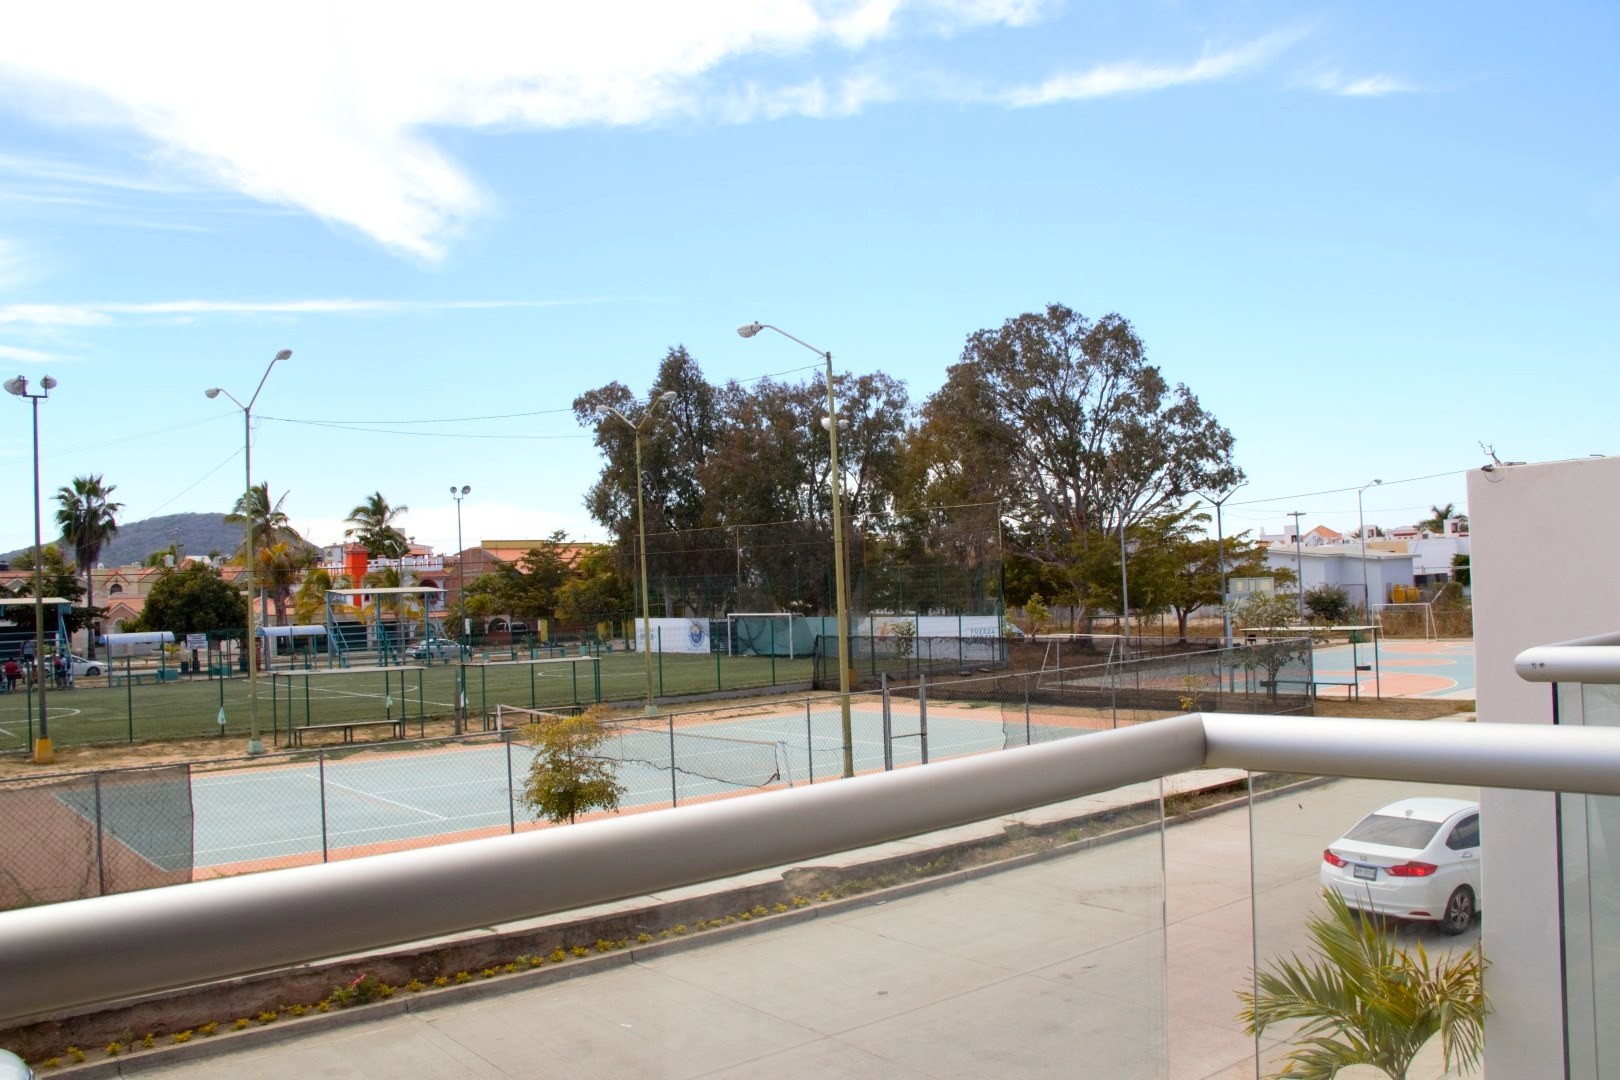 View of sports courts across the street.